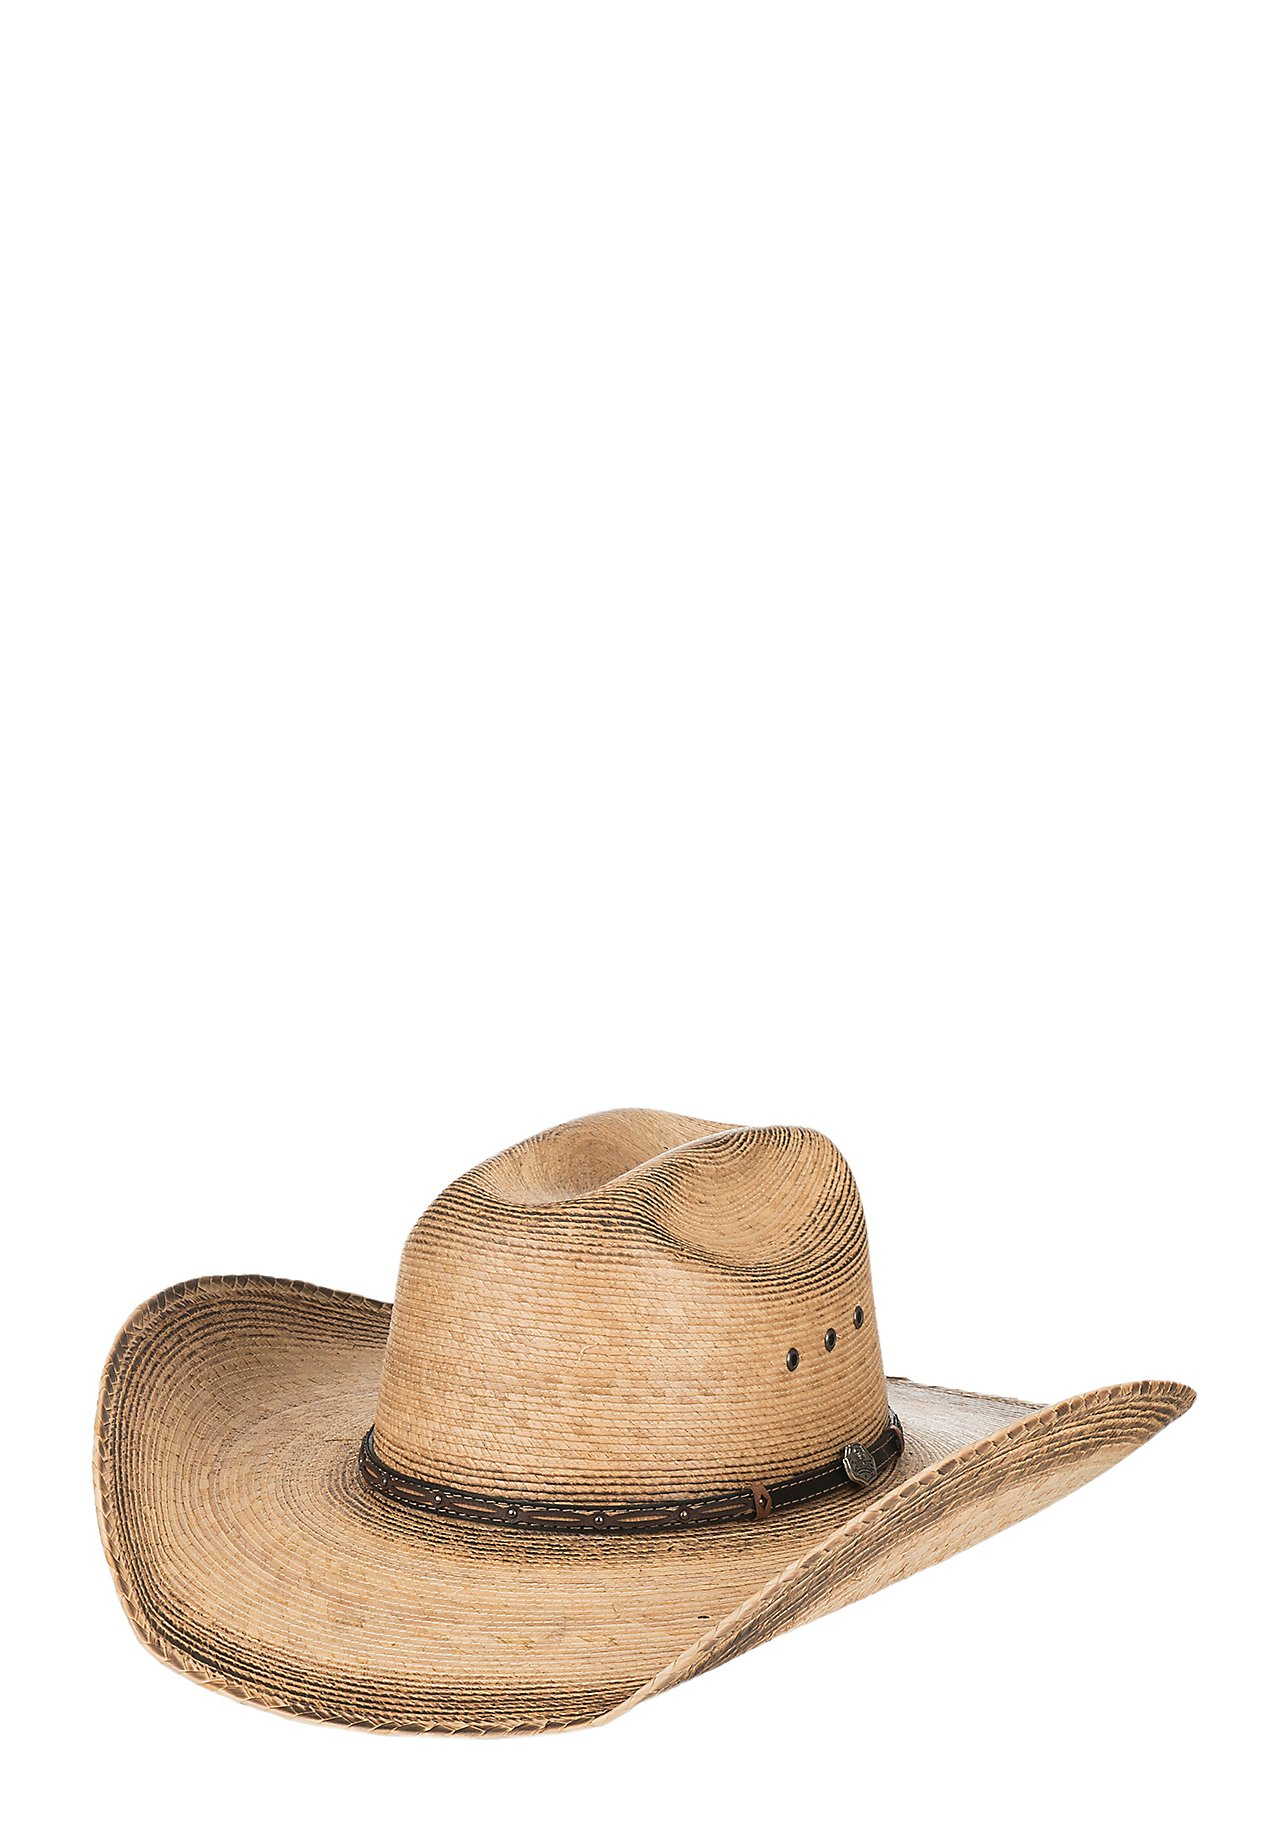 9af7cafb8b9 Cavenders Ranch Collection 15X Toasted Palm Cowboy Hat